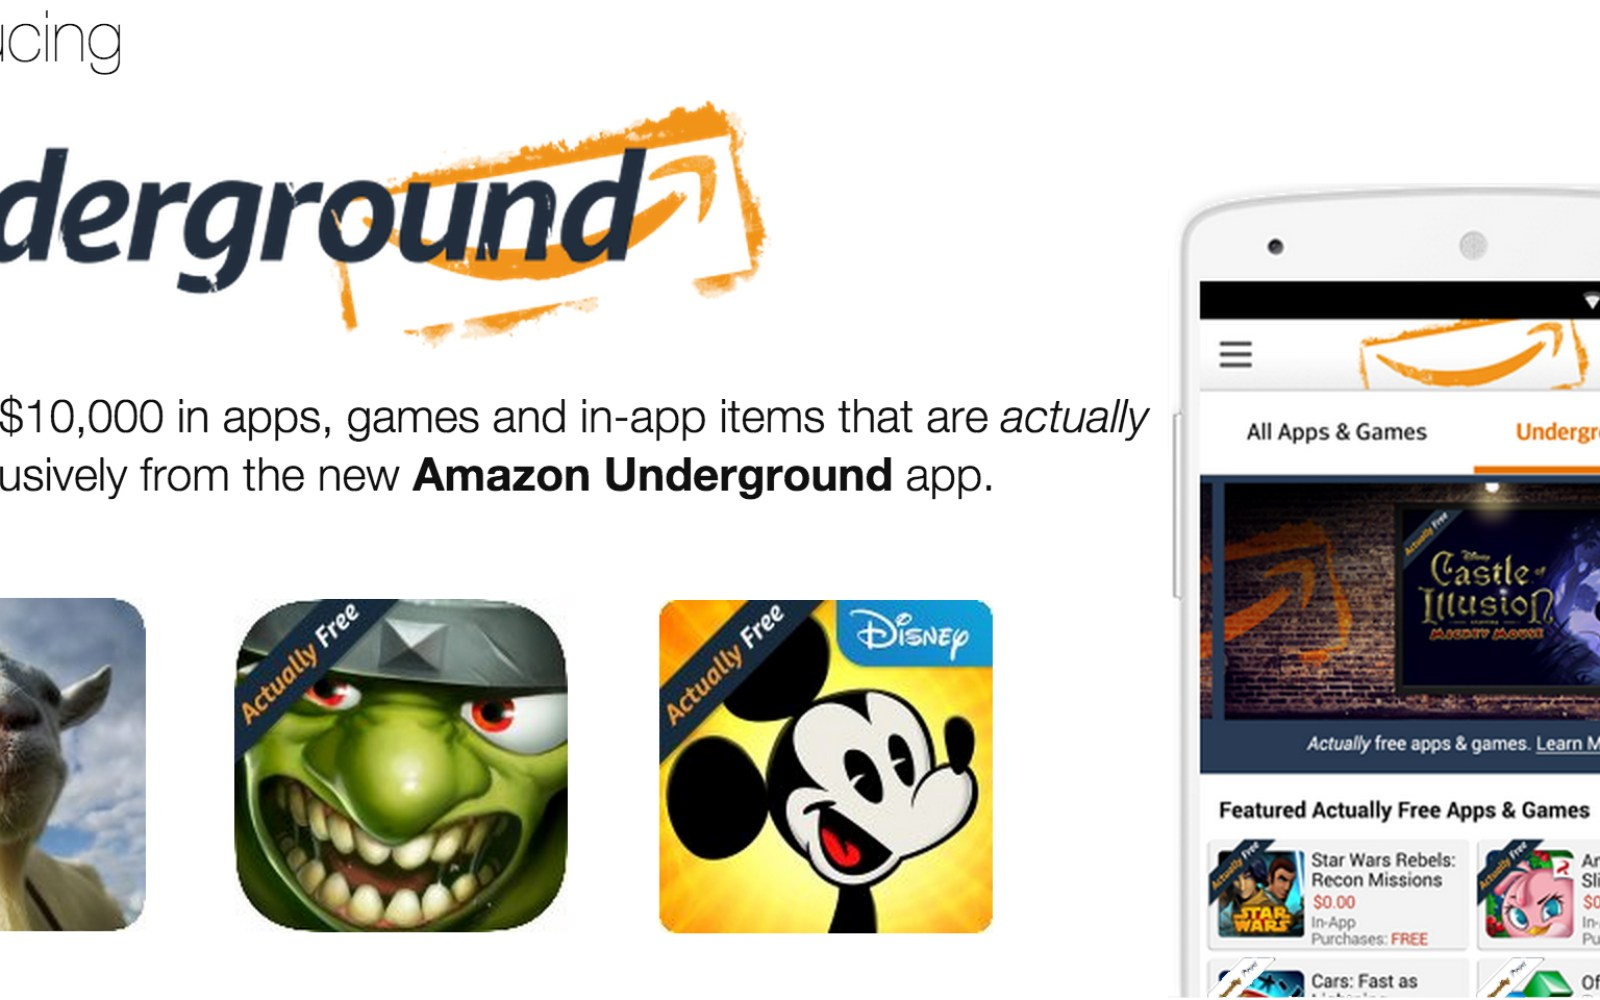 Amazon's new Underground app for Android delivers over $10,000 worth of free apps and games